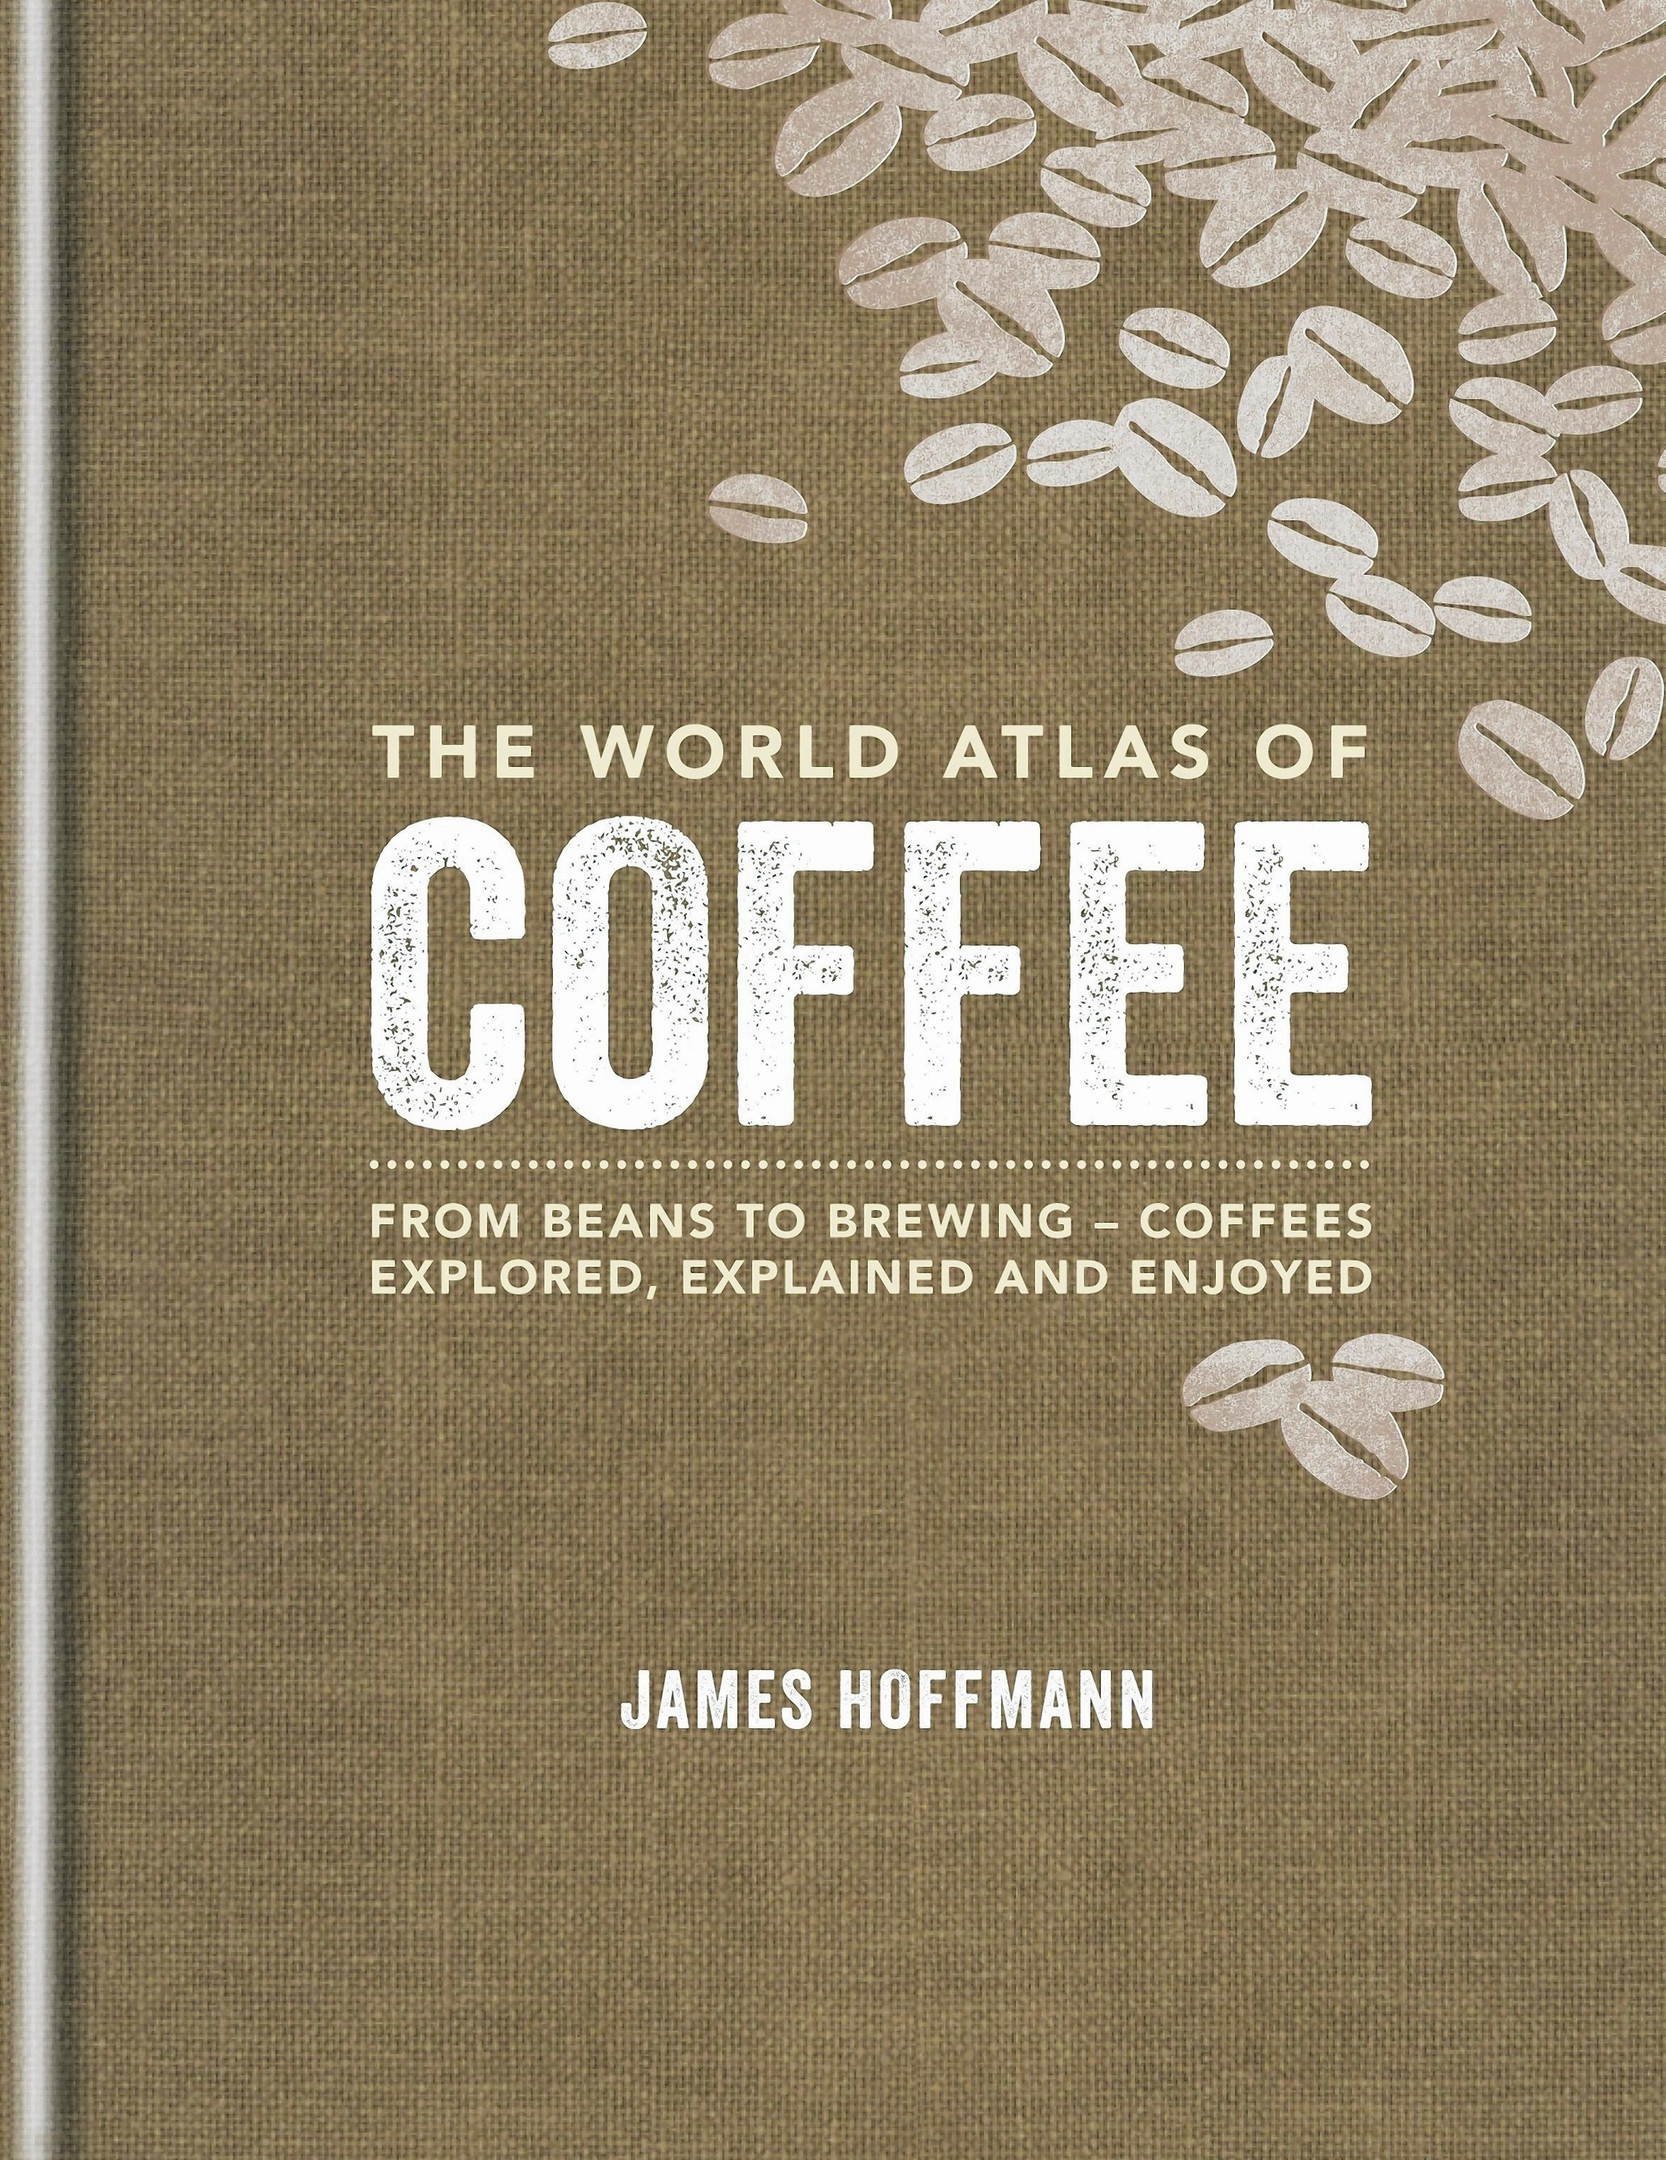 The World Atlas of Coffee, by James Hoffman, Published by Mitchell Beazley, Amazon.co.uk